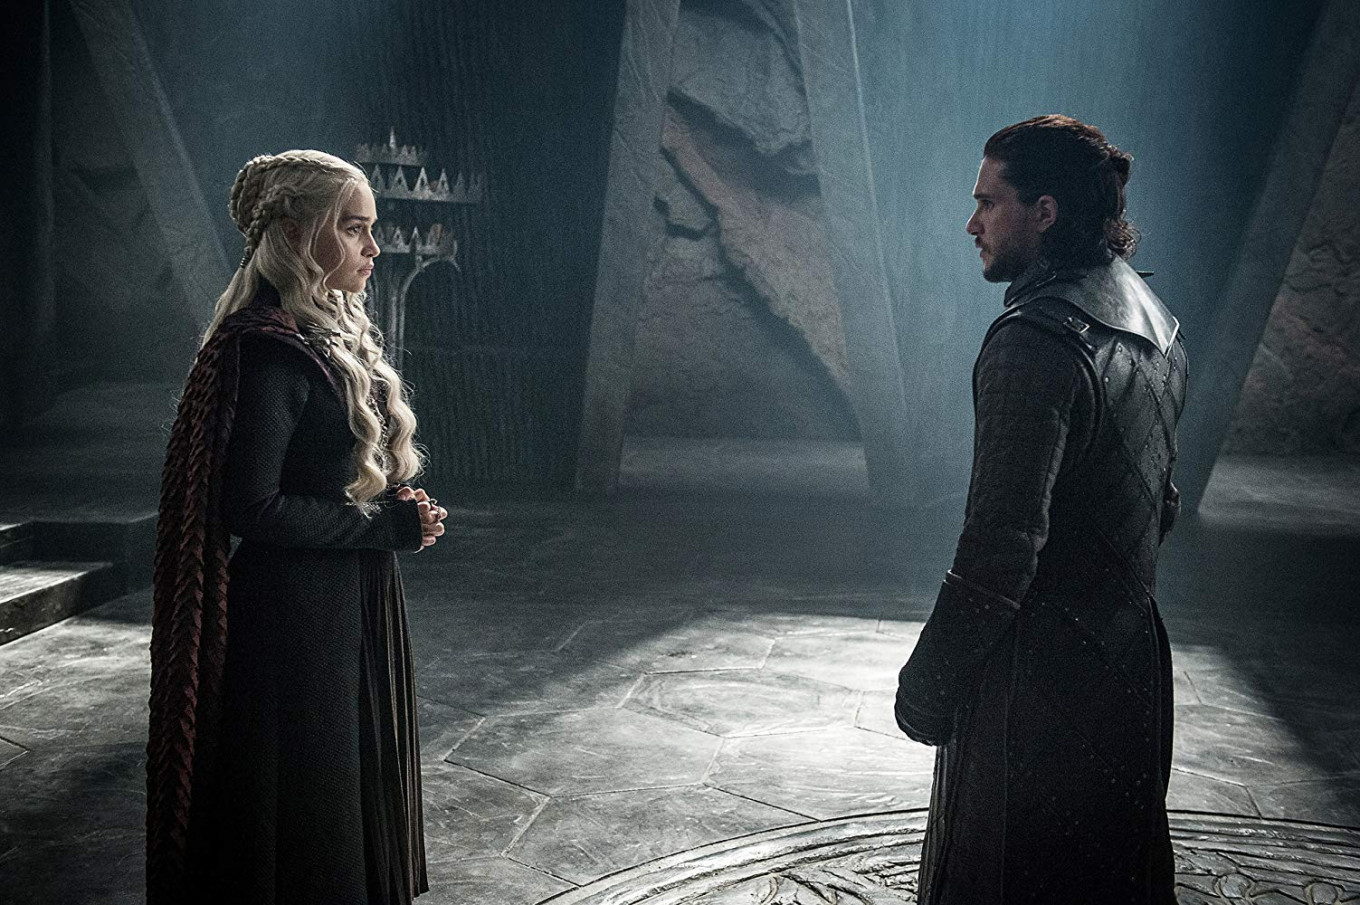 HBO unleashes first look 'Game of Thrones' Season 8